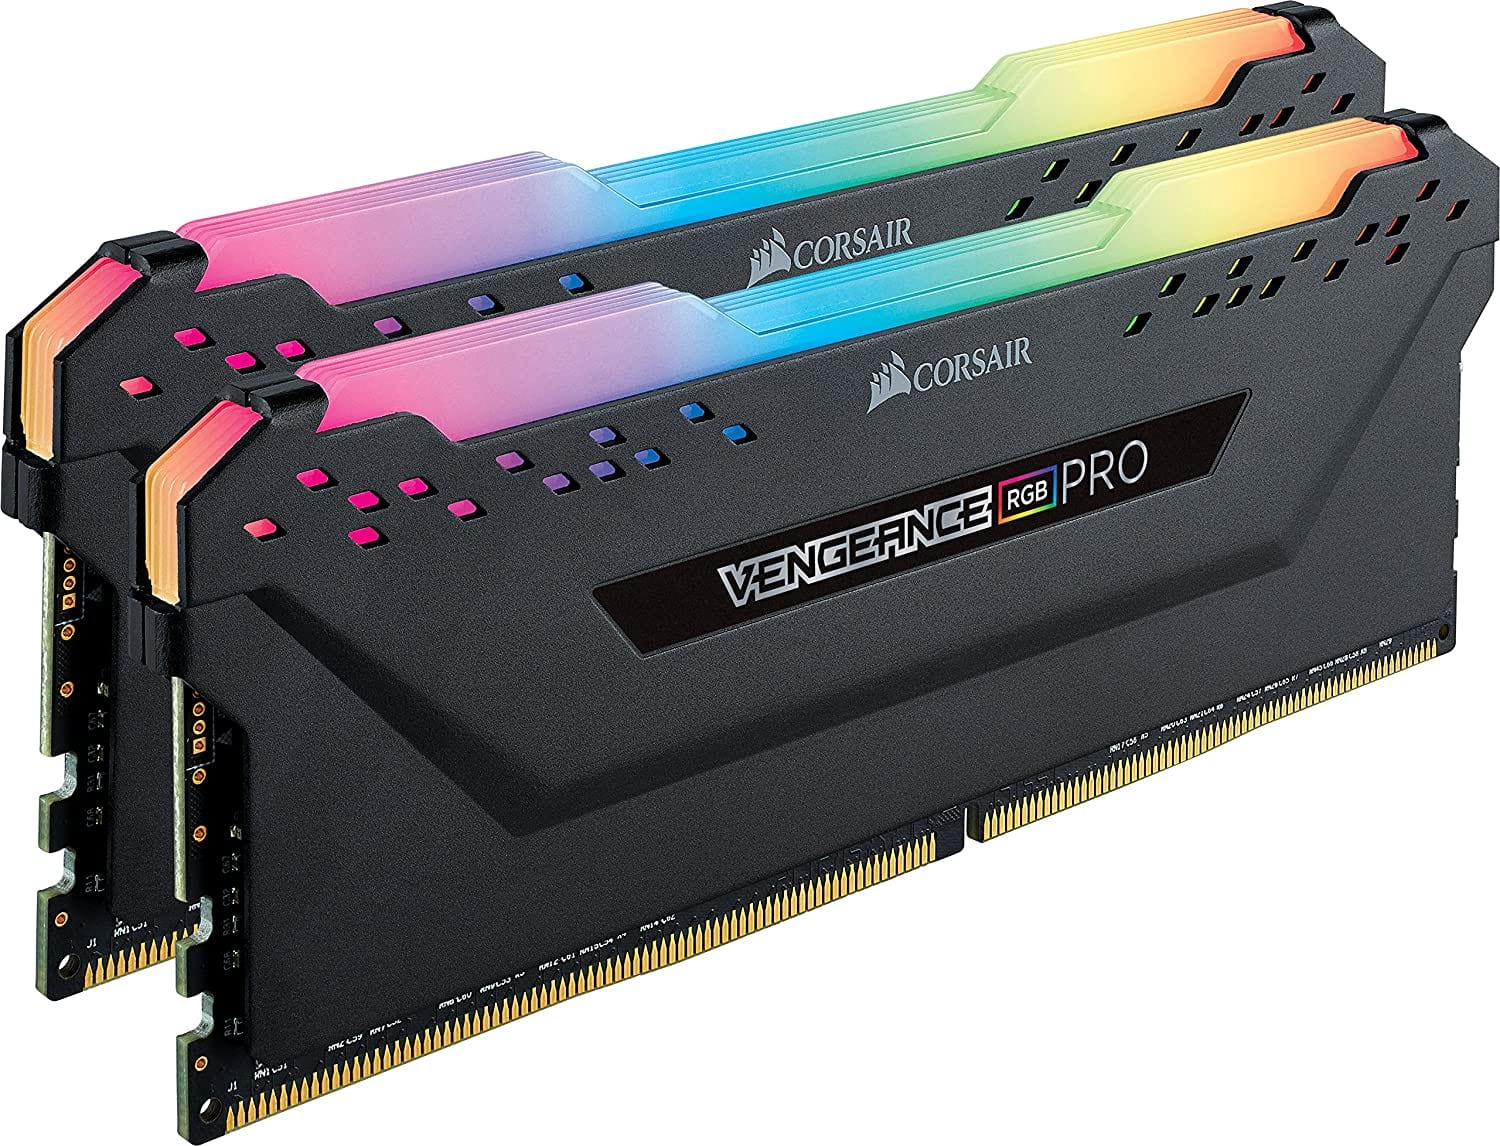 CORSAIR VENGEANCE RGB PRO 16GB (2x8GB) DDR4 3200MHz C16  - Black ($74.99)